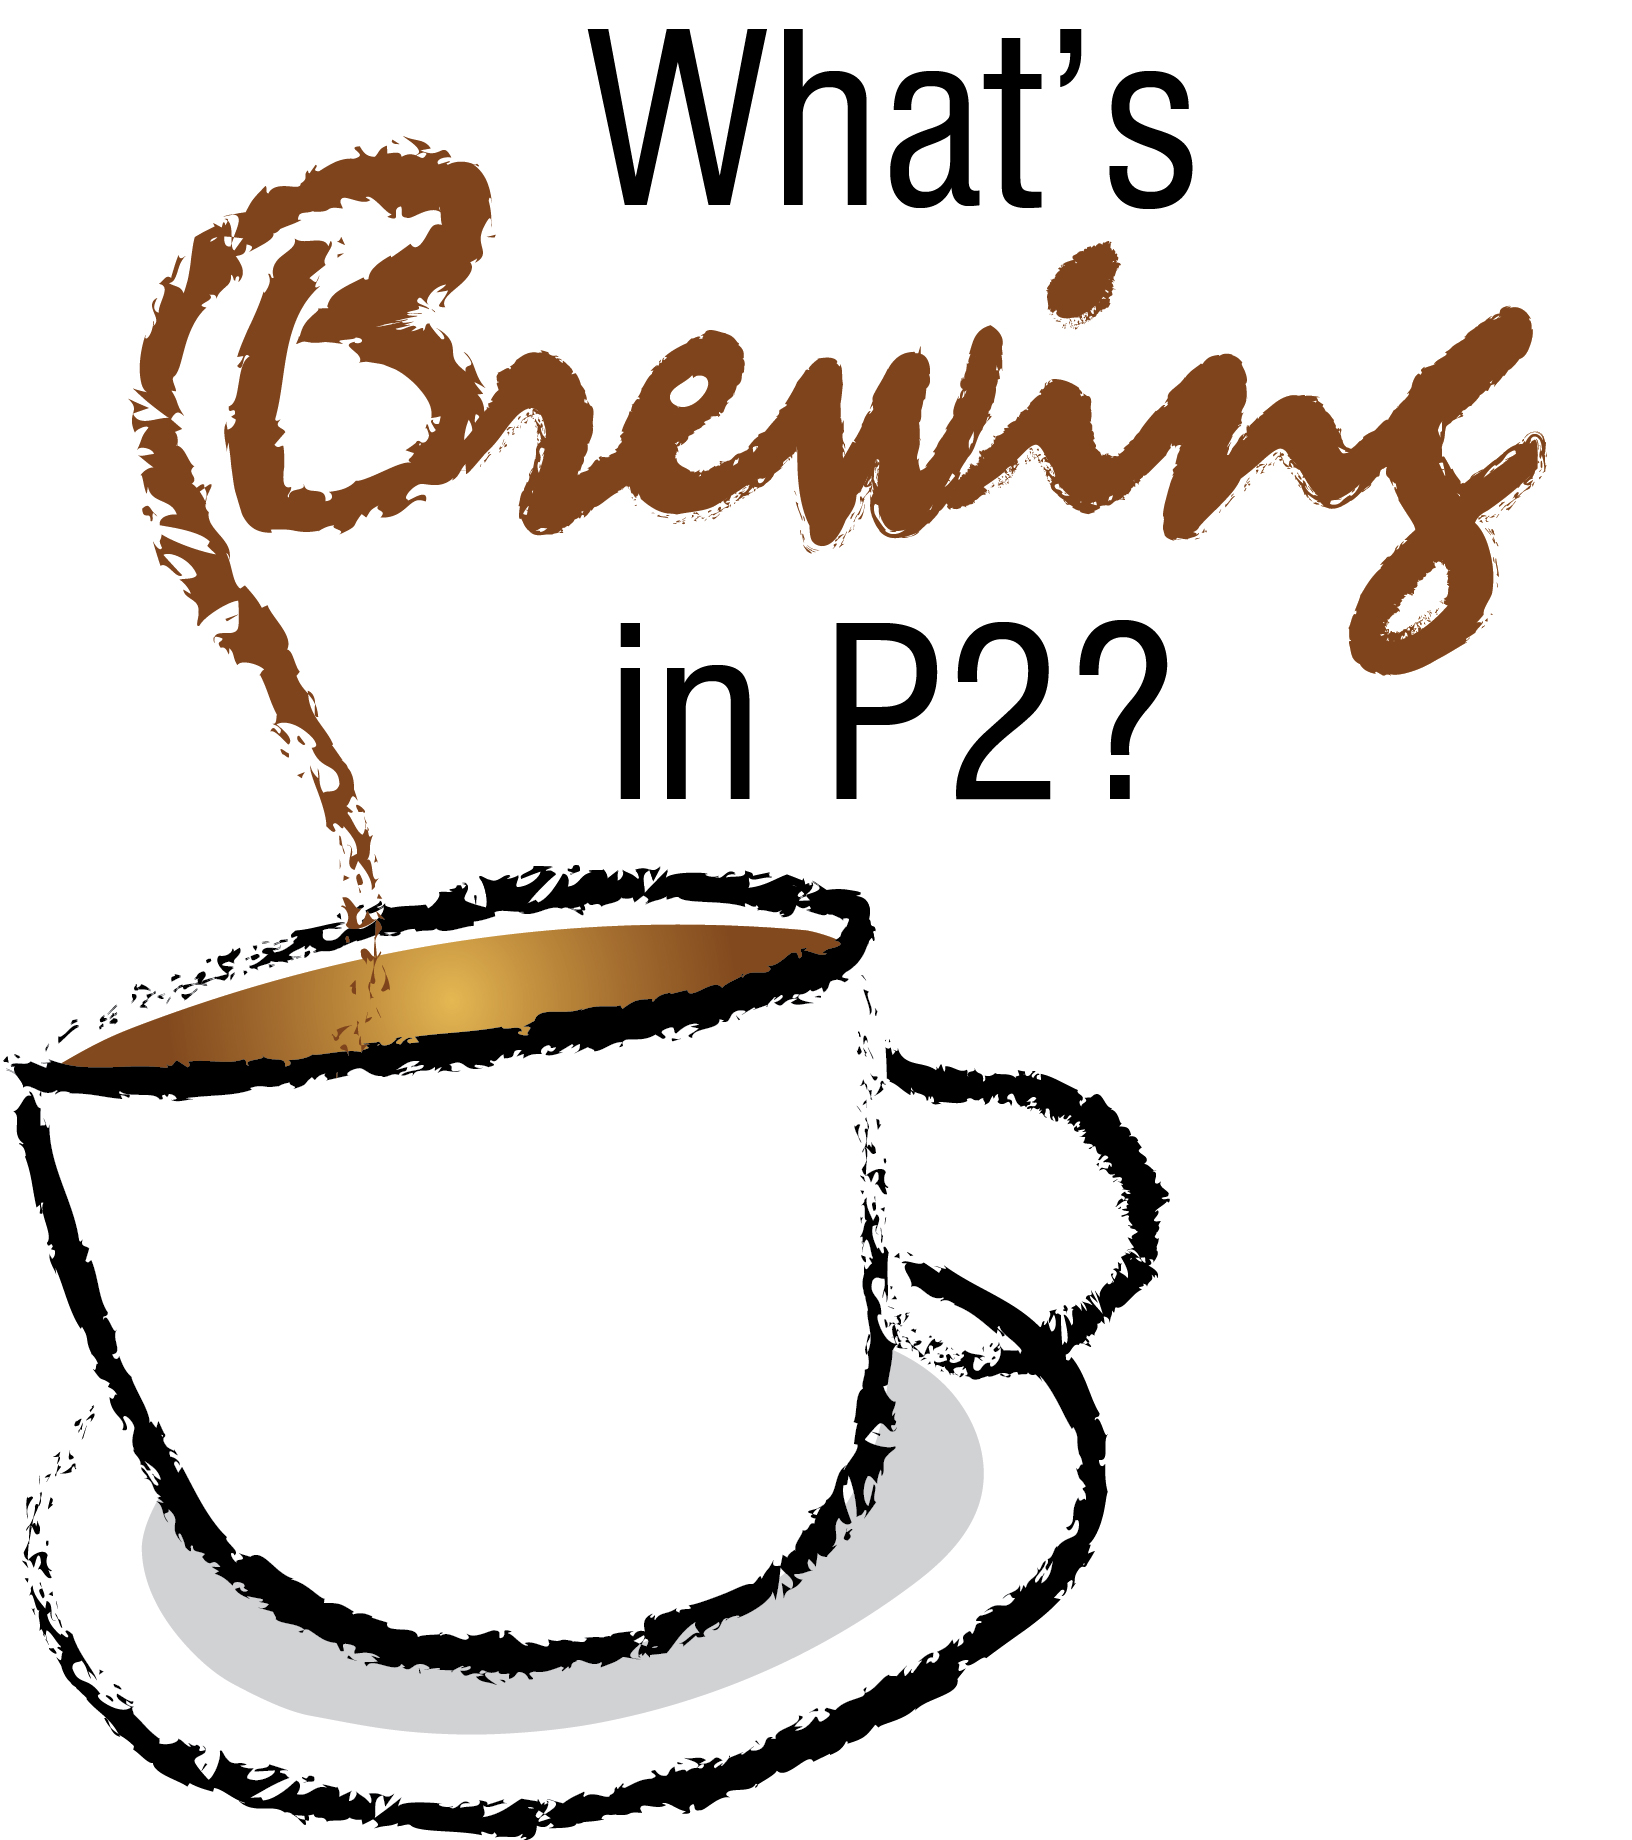 What's Brewing in P2?